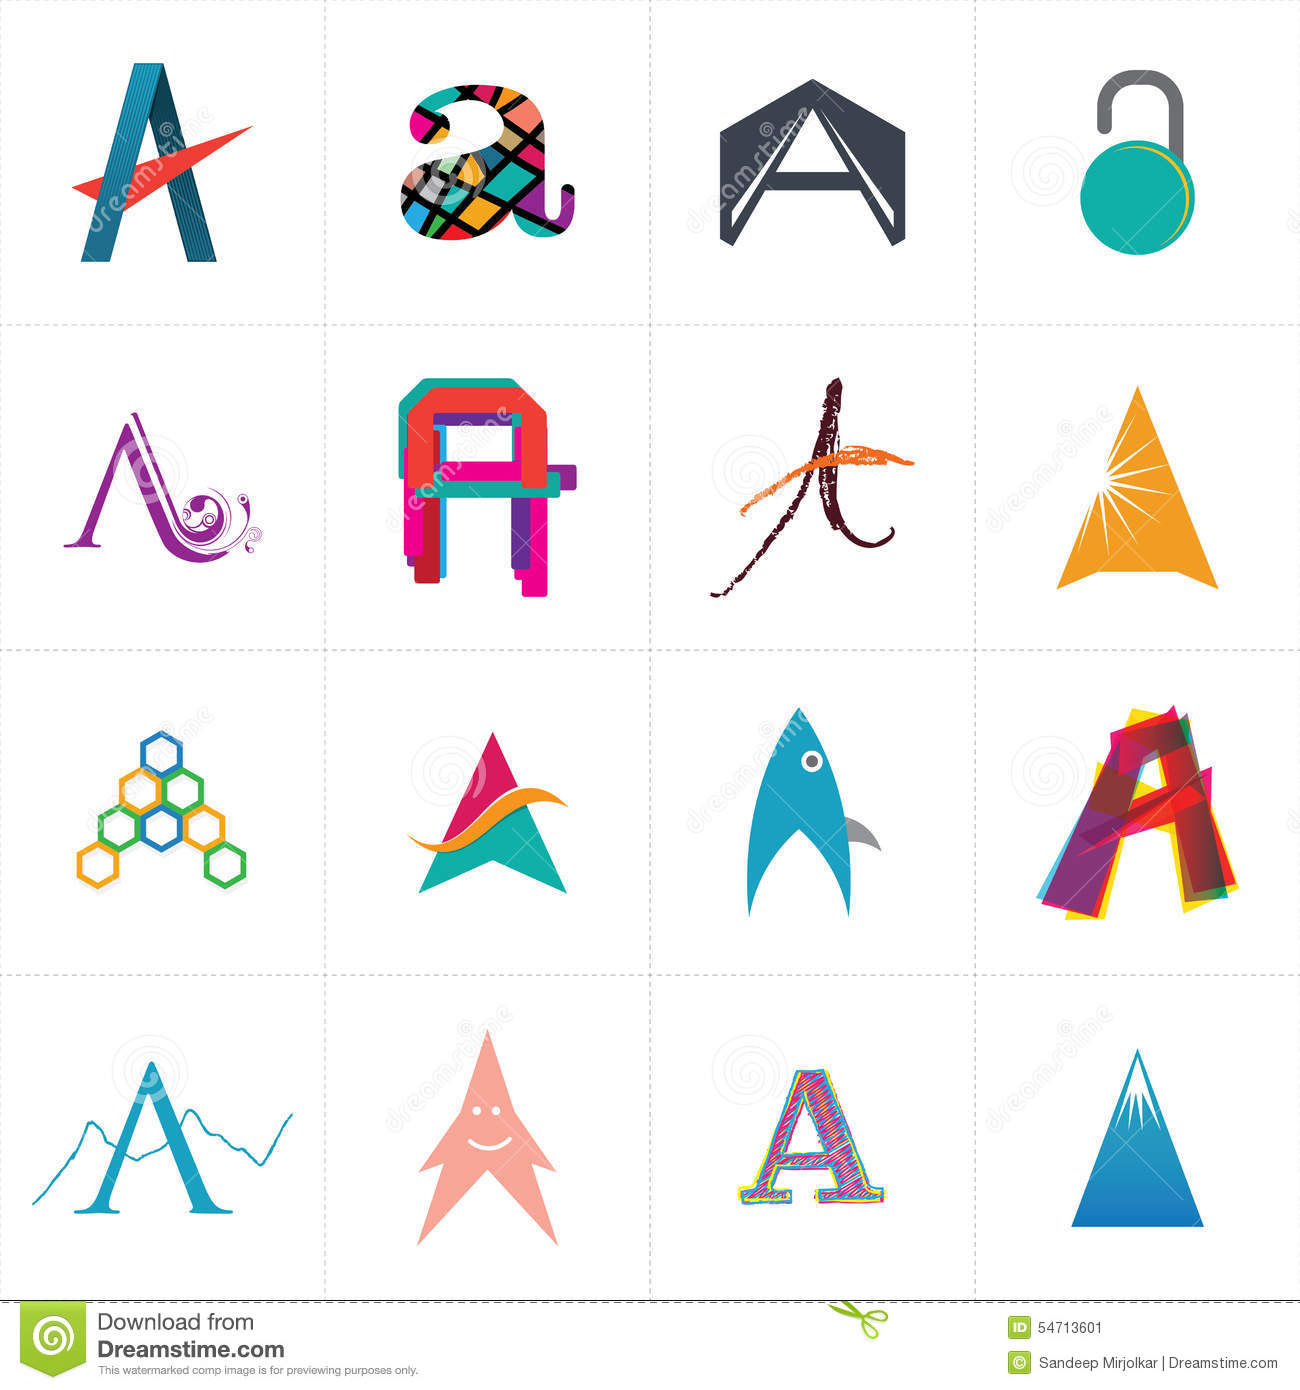 ARG! animated GIF cartoons and alphabets